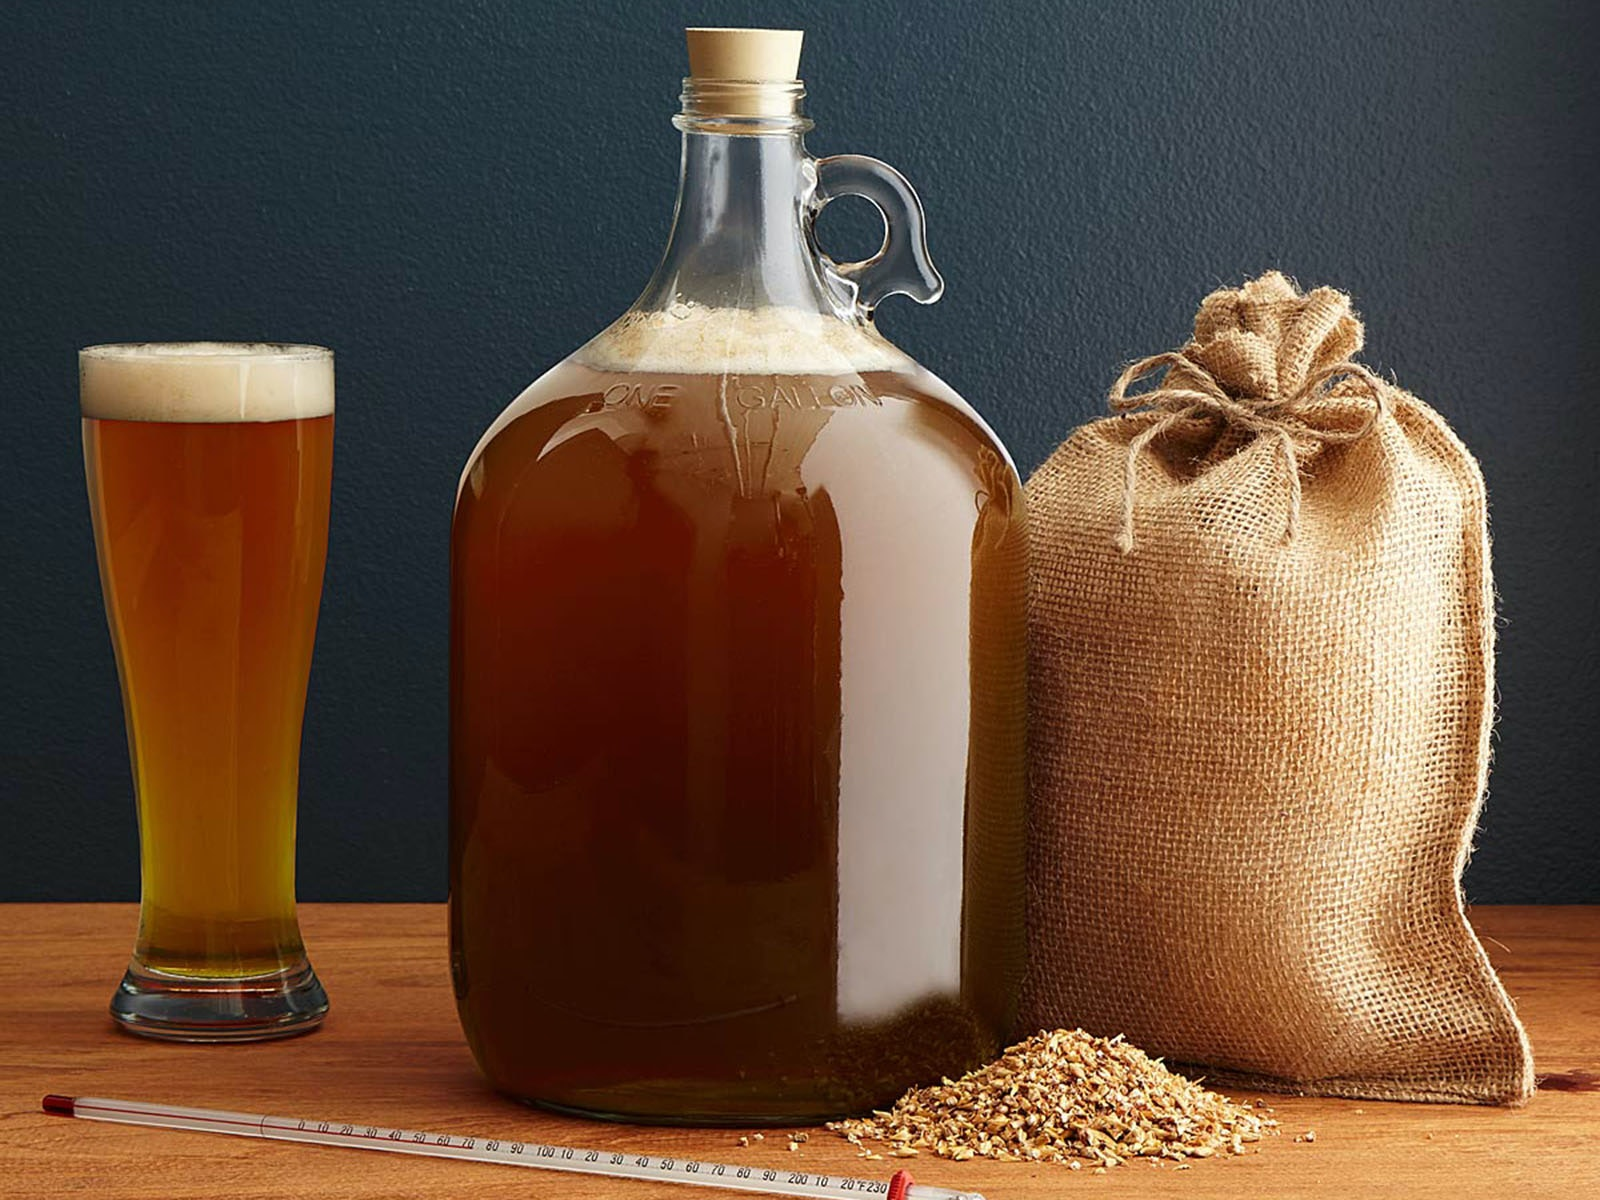 This West Coast home beer brewing kit